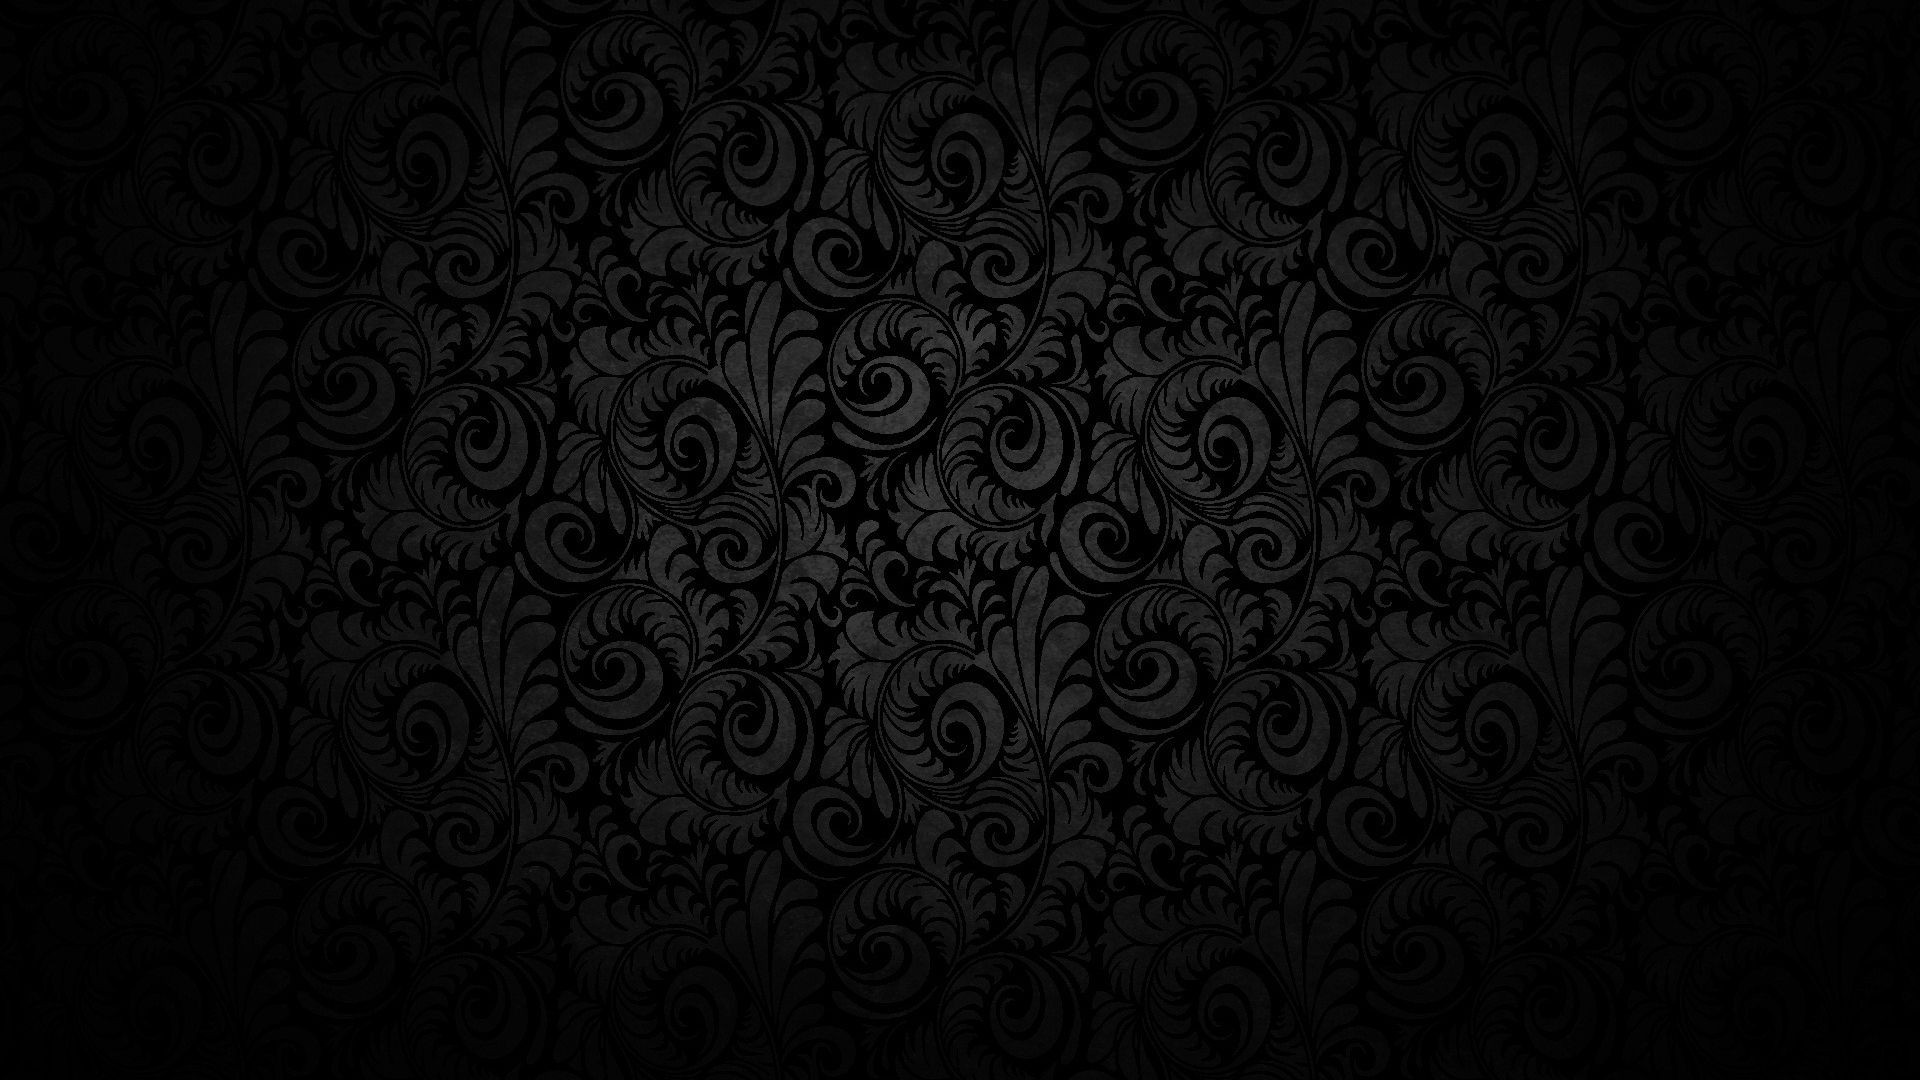 Black Abstract Image Flip Wallpapers Download Wallpaper HD 1920x1080